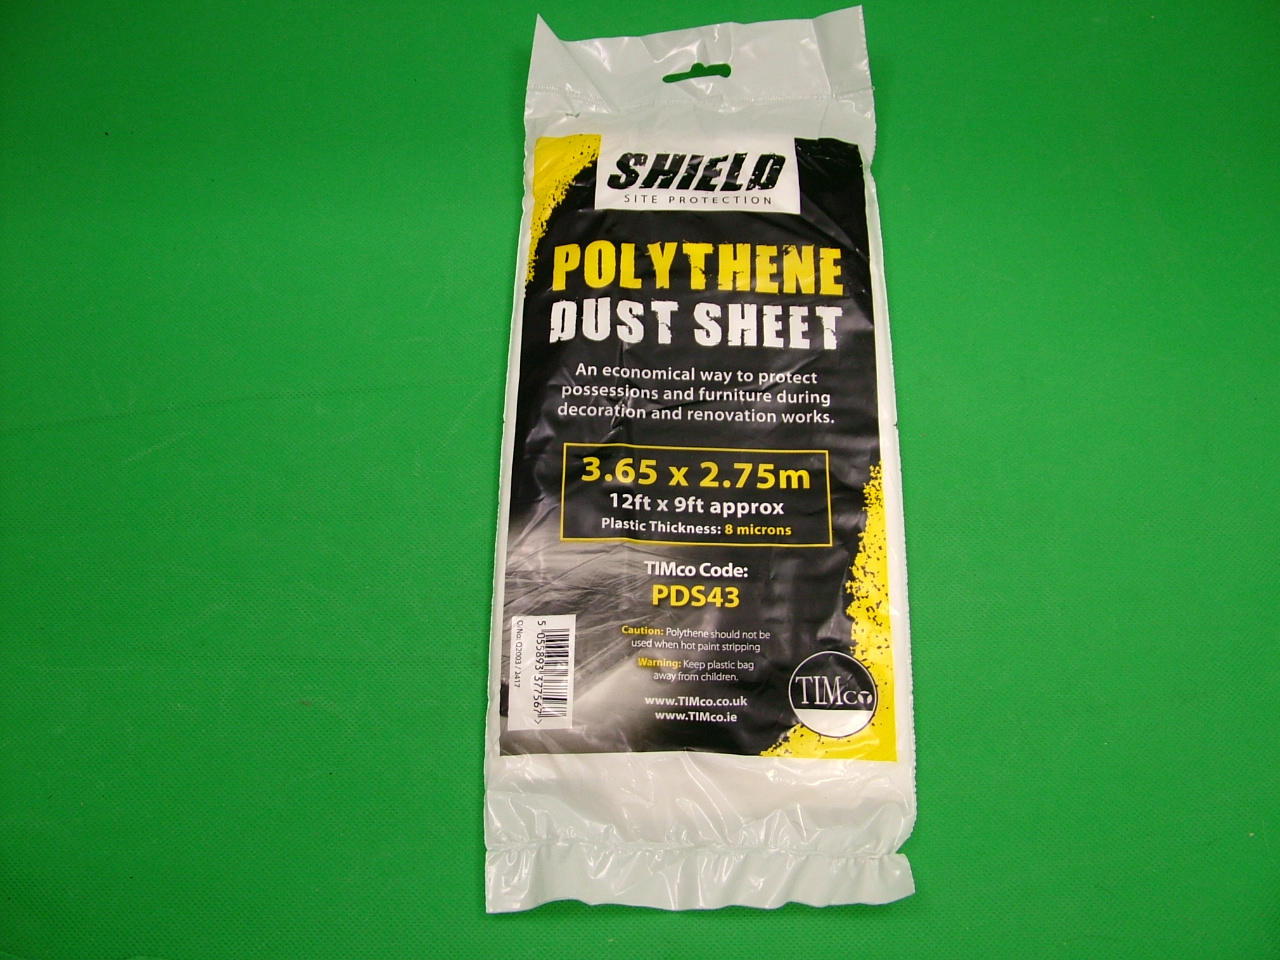 Disposable polythene dust sheets